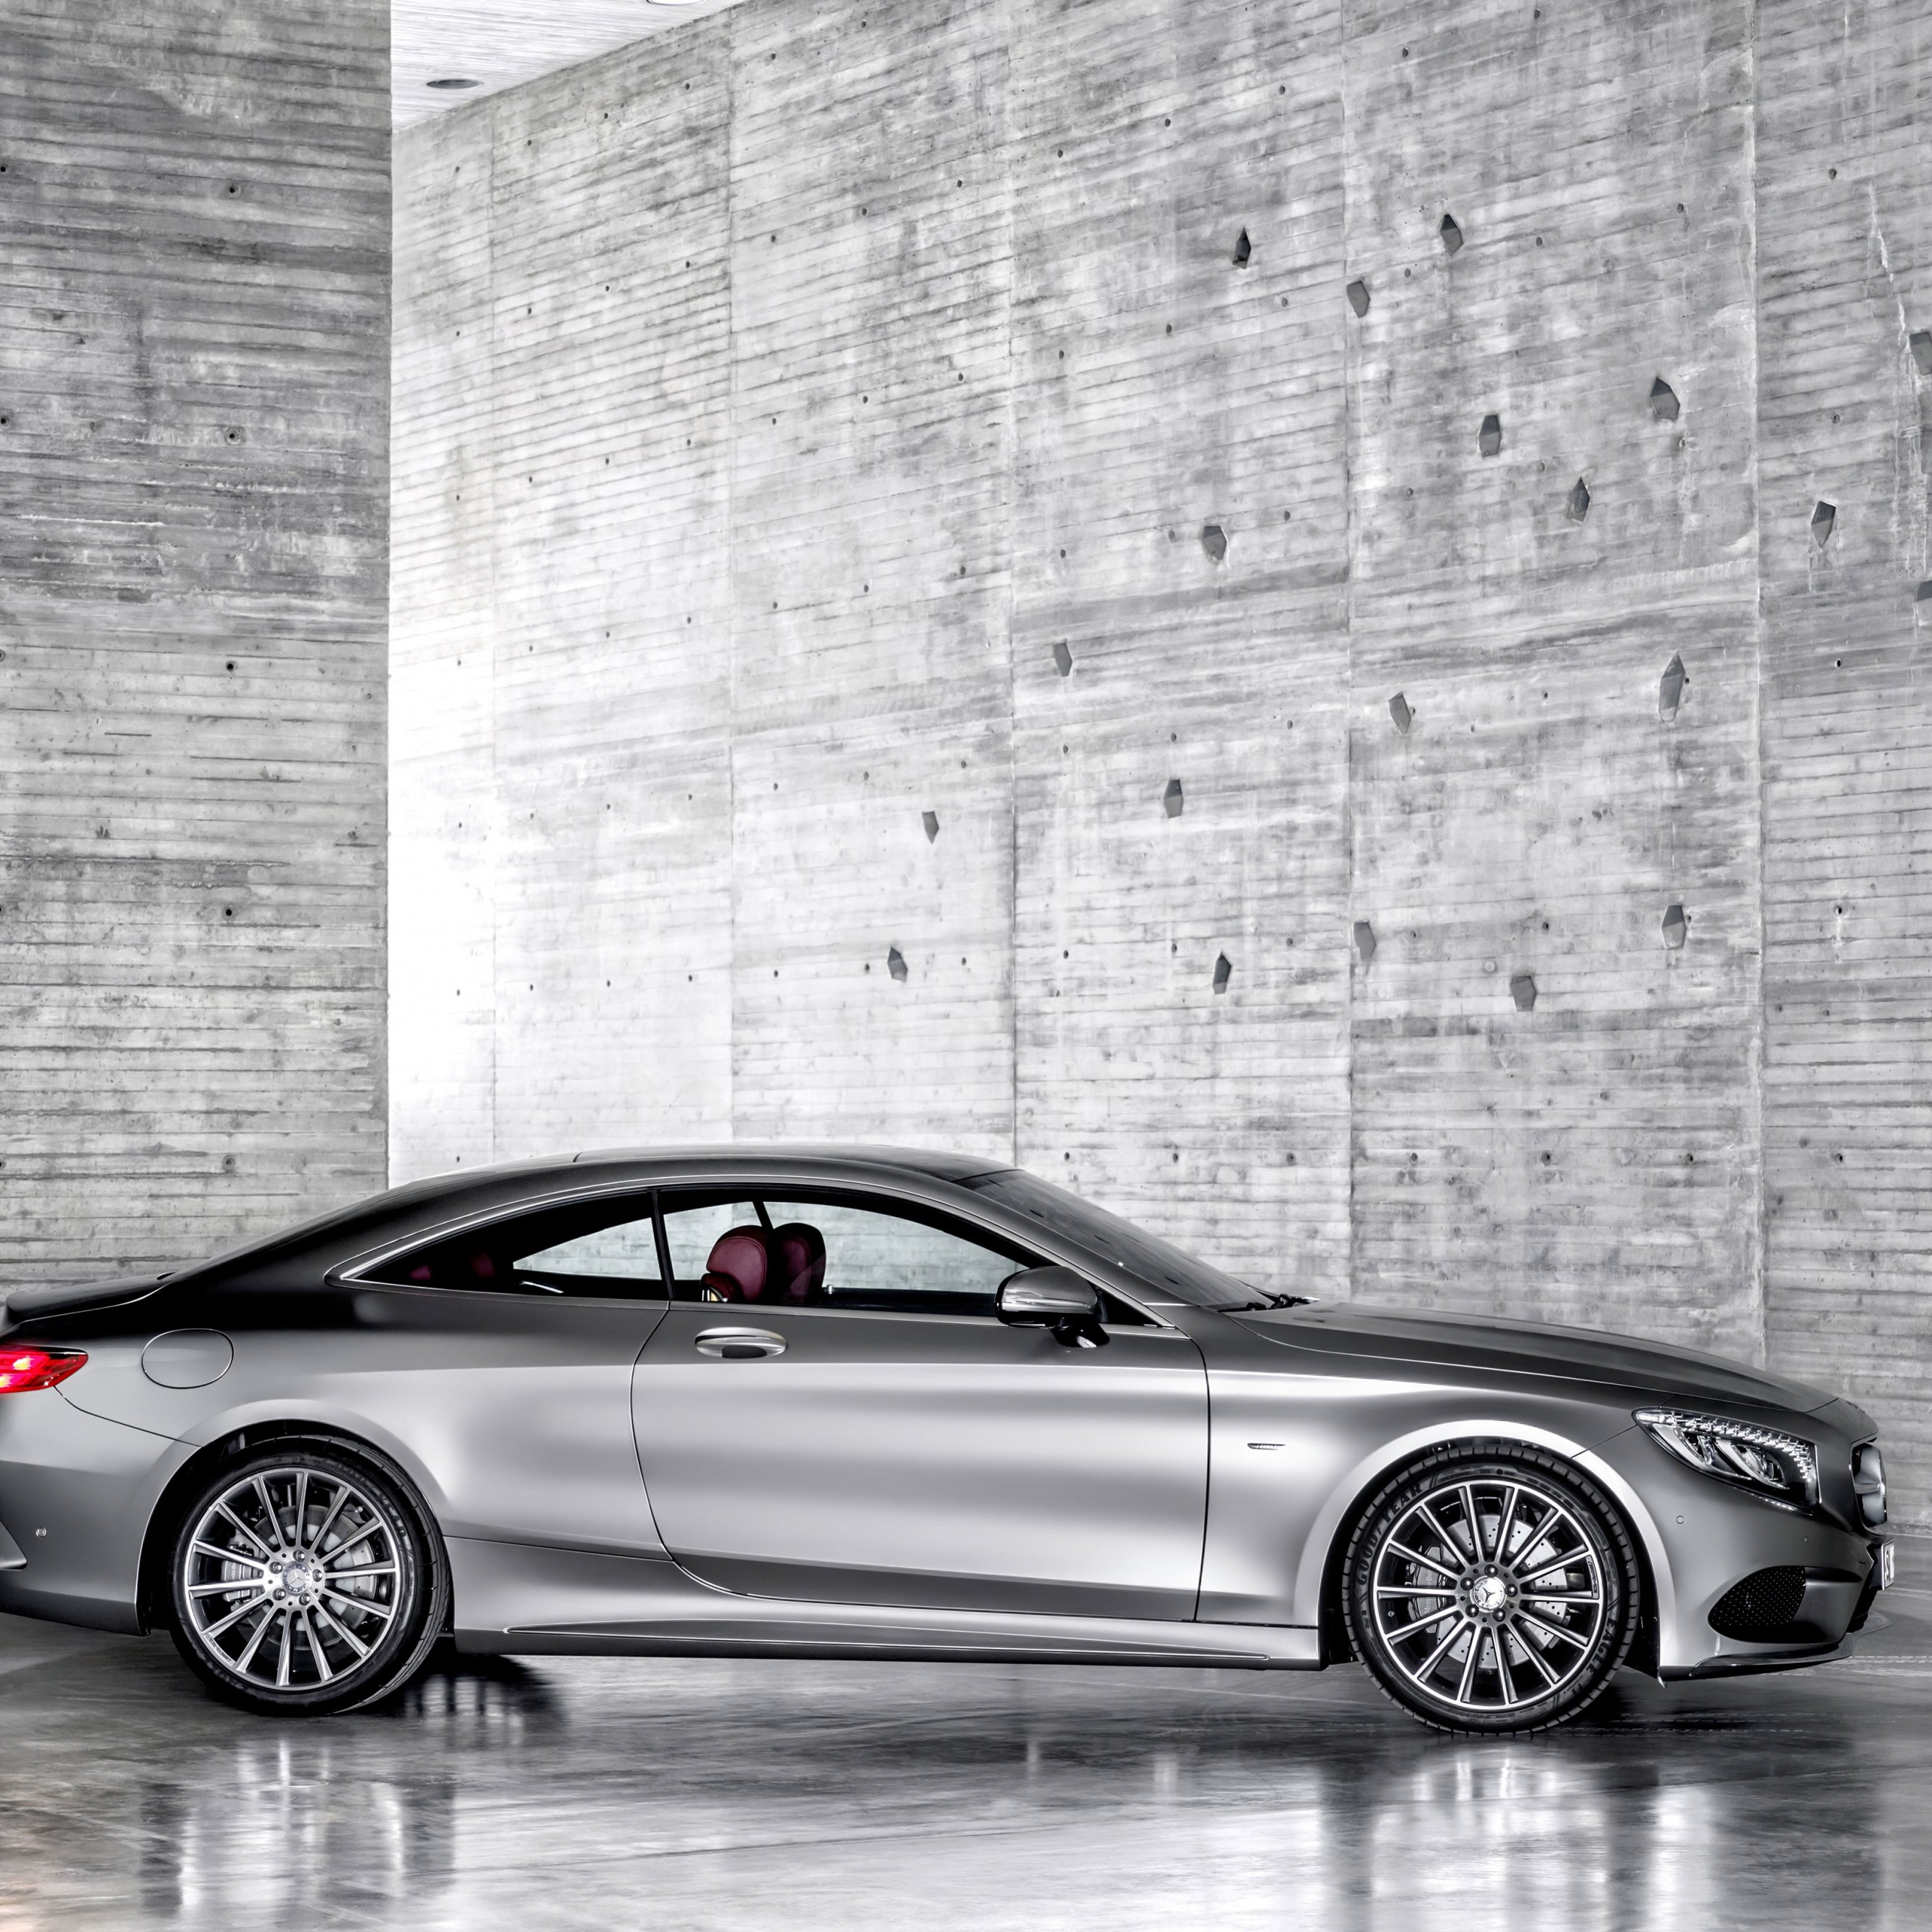 2015 Mercedes-Benz S-Class Coupe Wallpaper for Apple iPhone 6 Plus